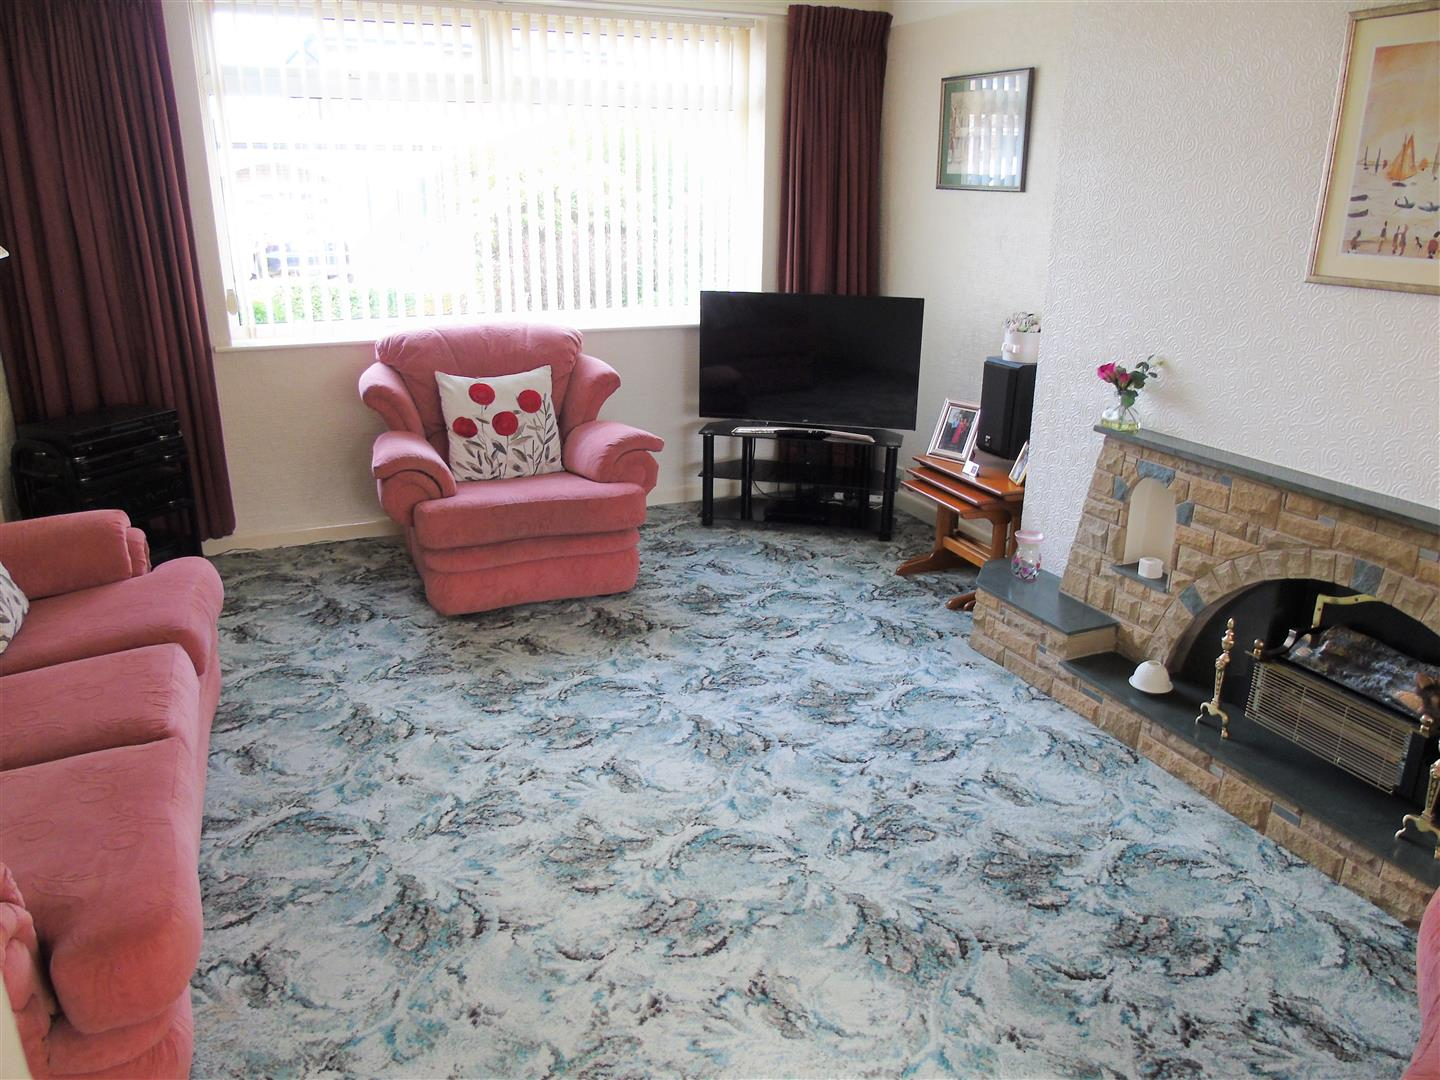 3 Bedrooms, House - Semi-Detached, Rugby Drive, Liverpool